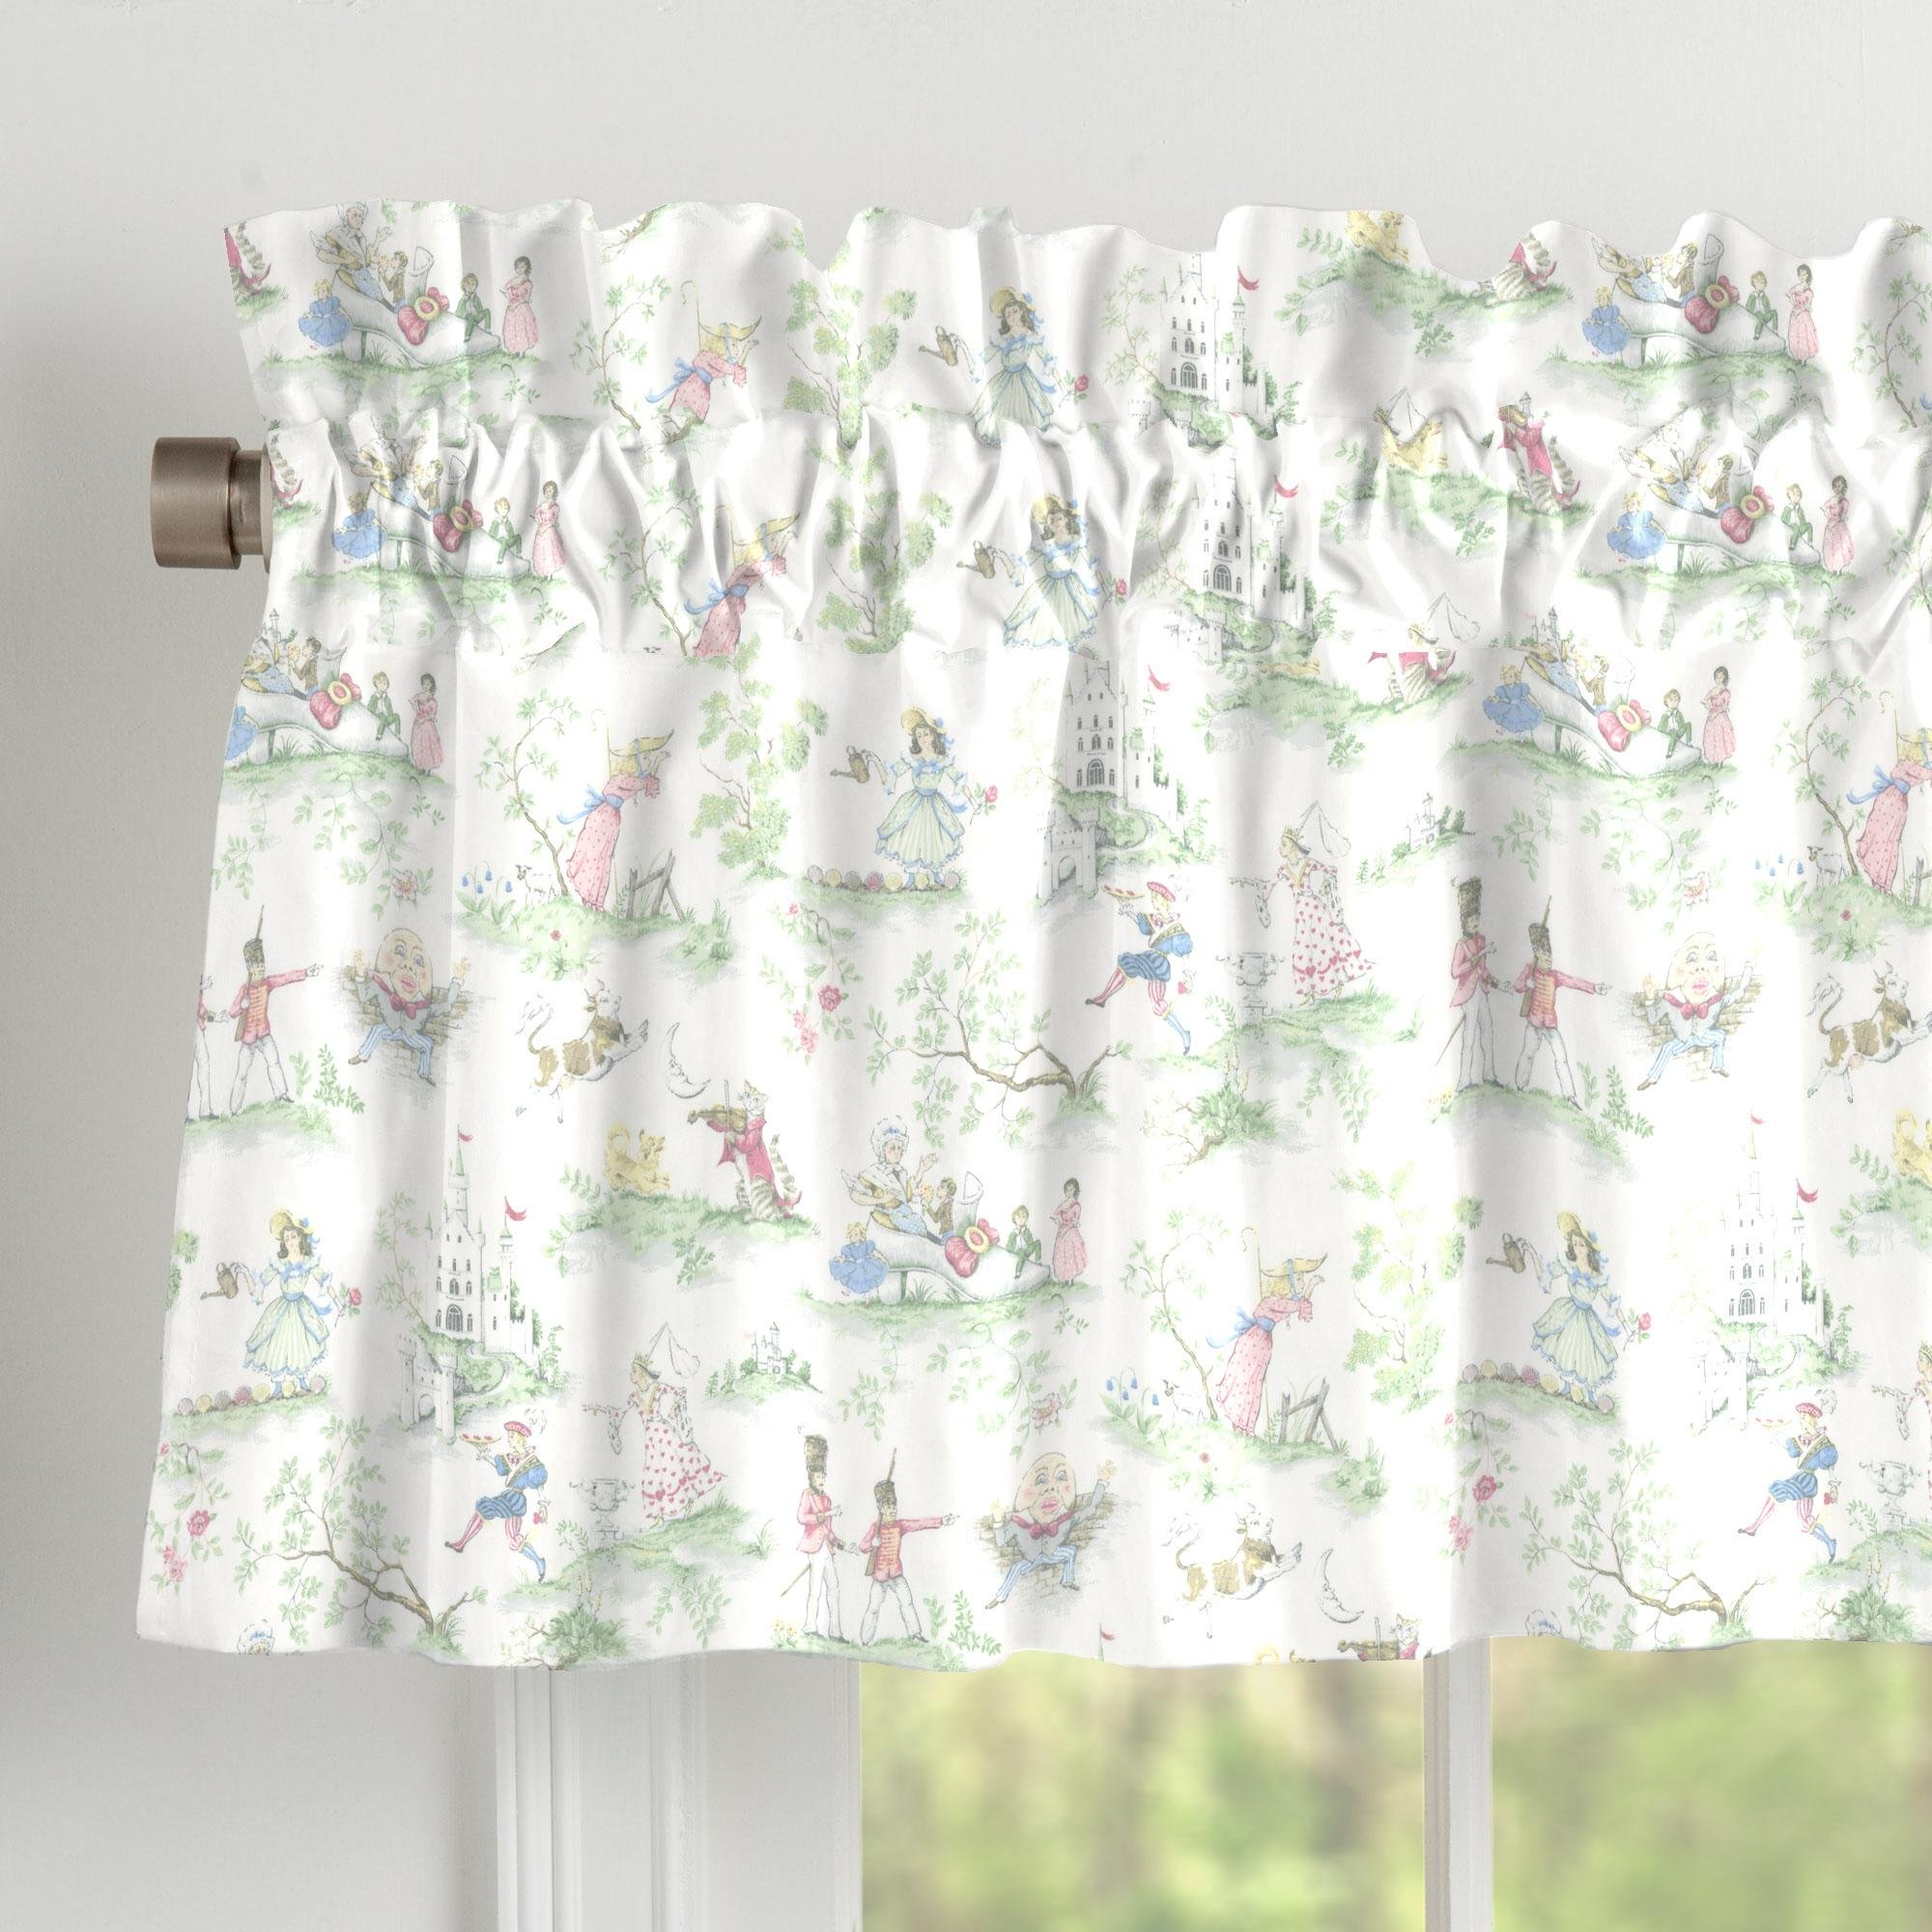 Carousel Designs Nursery Rhyme Toile Window Valance Rod Pocket by Carousel Designs